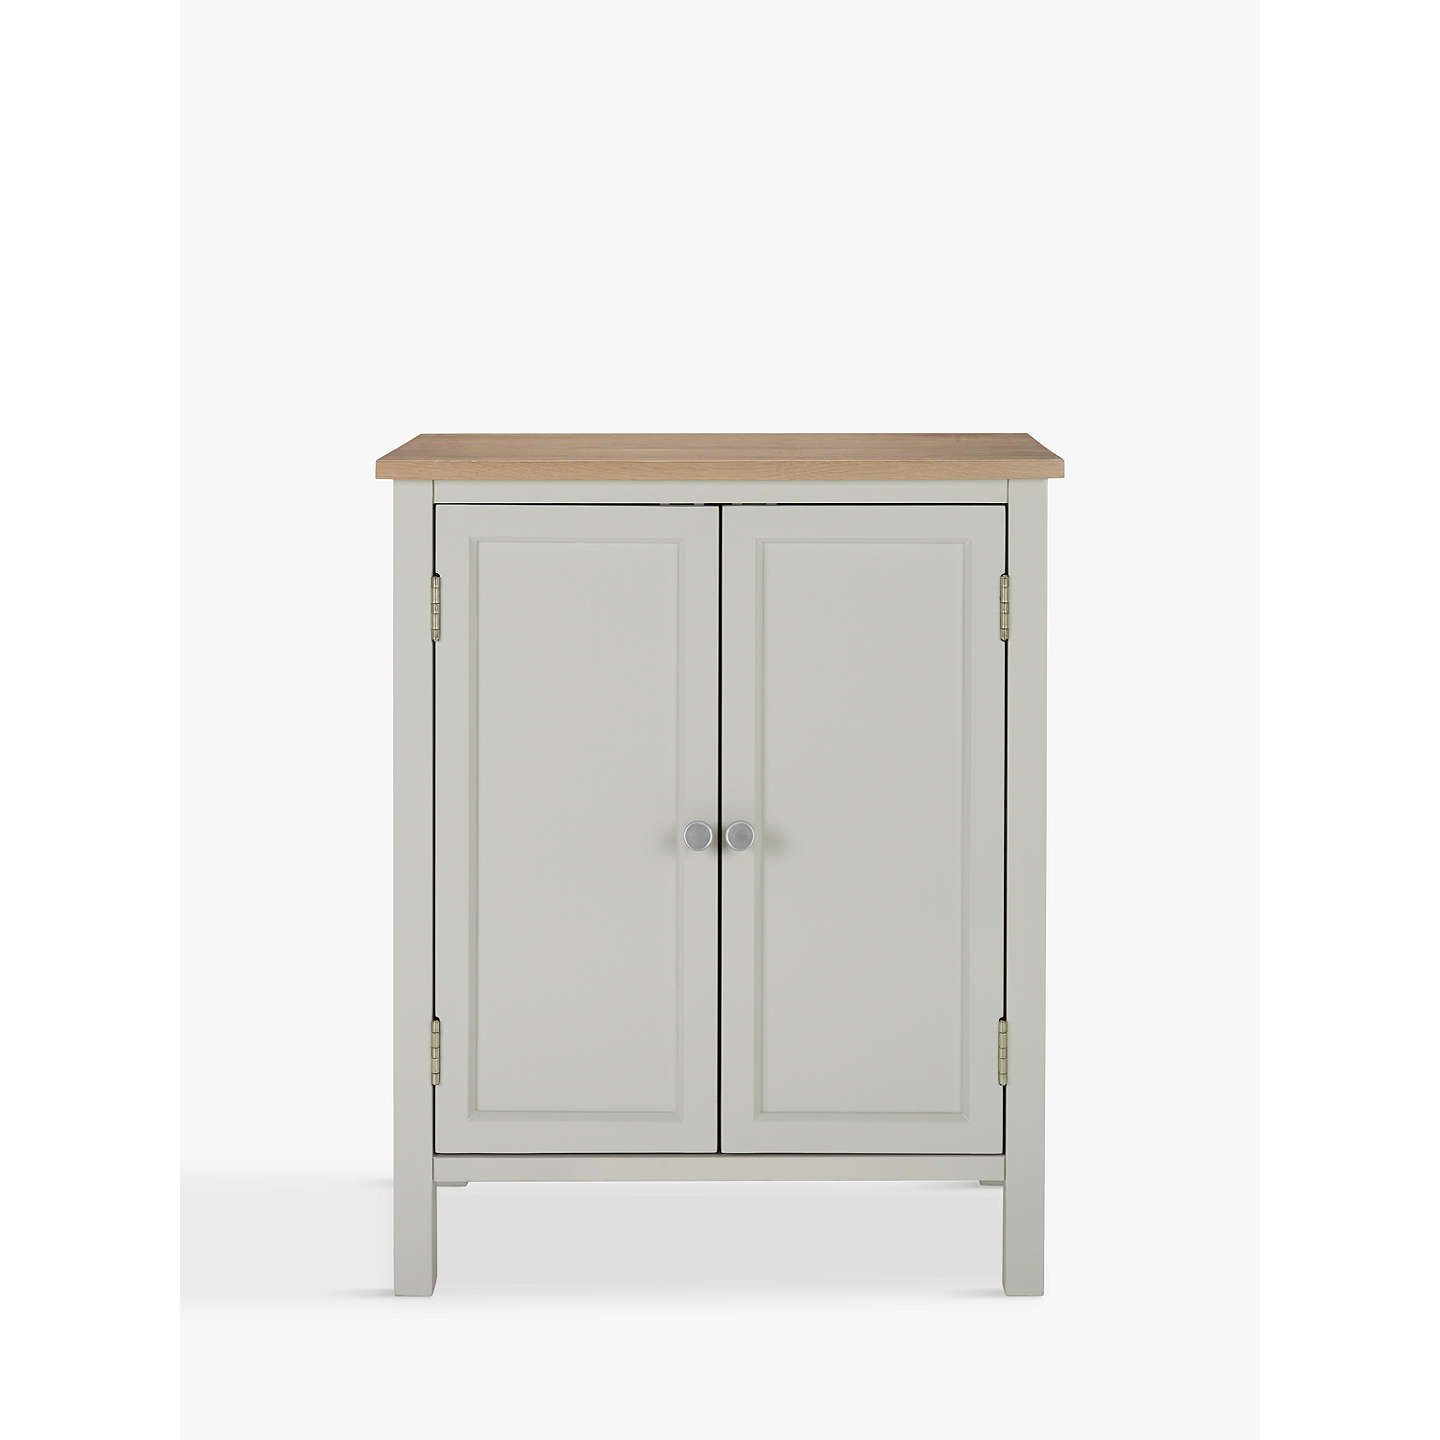 Free Standing Kitchen Cabinets John Lewis: Croft Collection Blakeney Double Towel Cabinet, Light